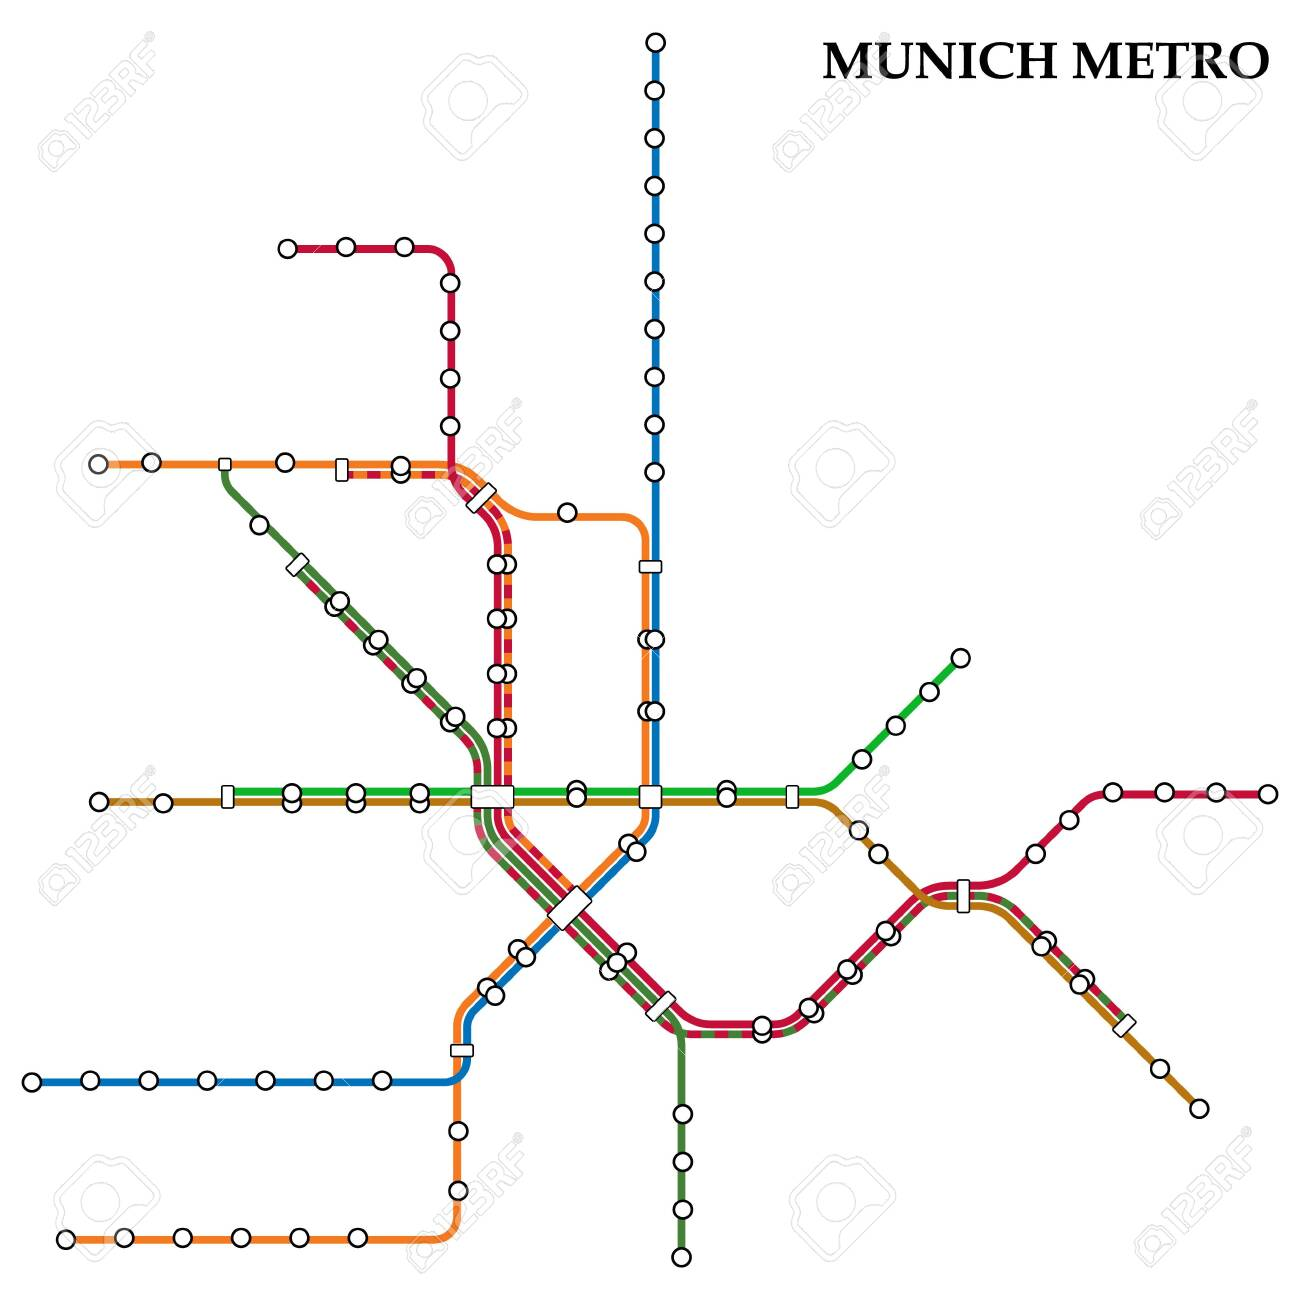 Munich Subway Map.Map Of The Munich Metro Subway Template Of City Transportation